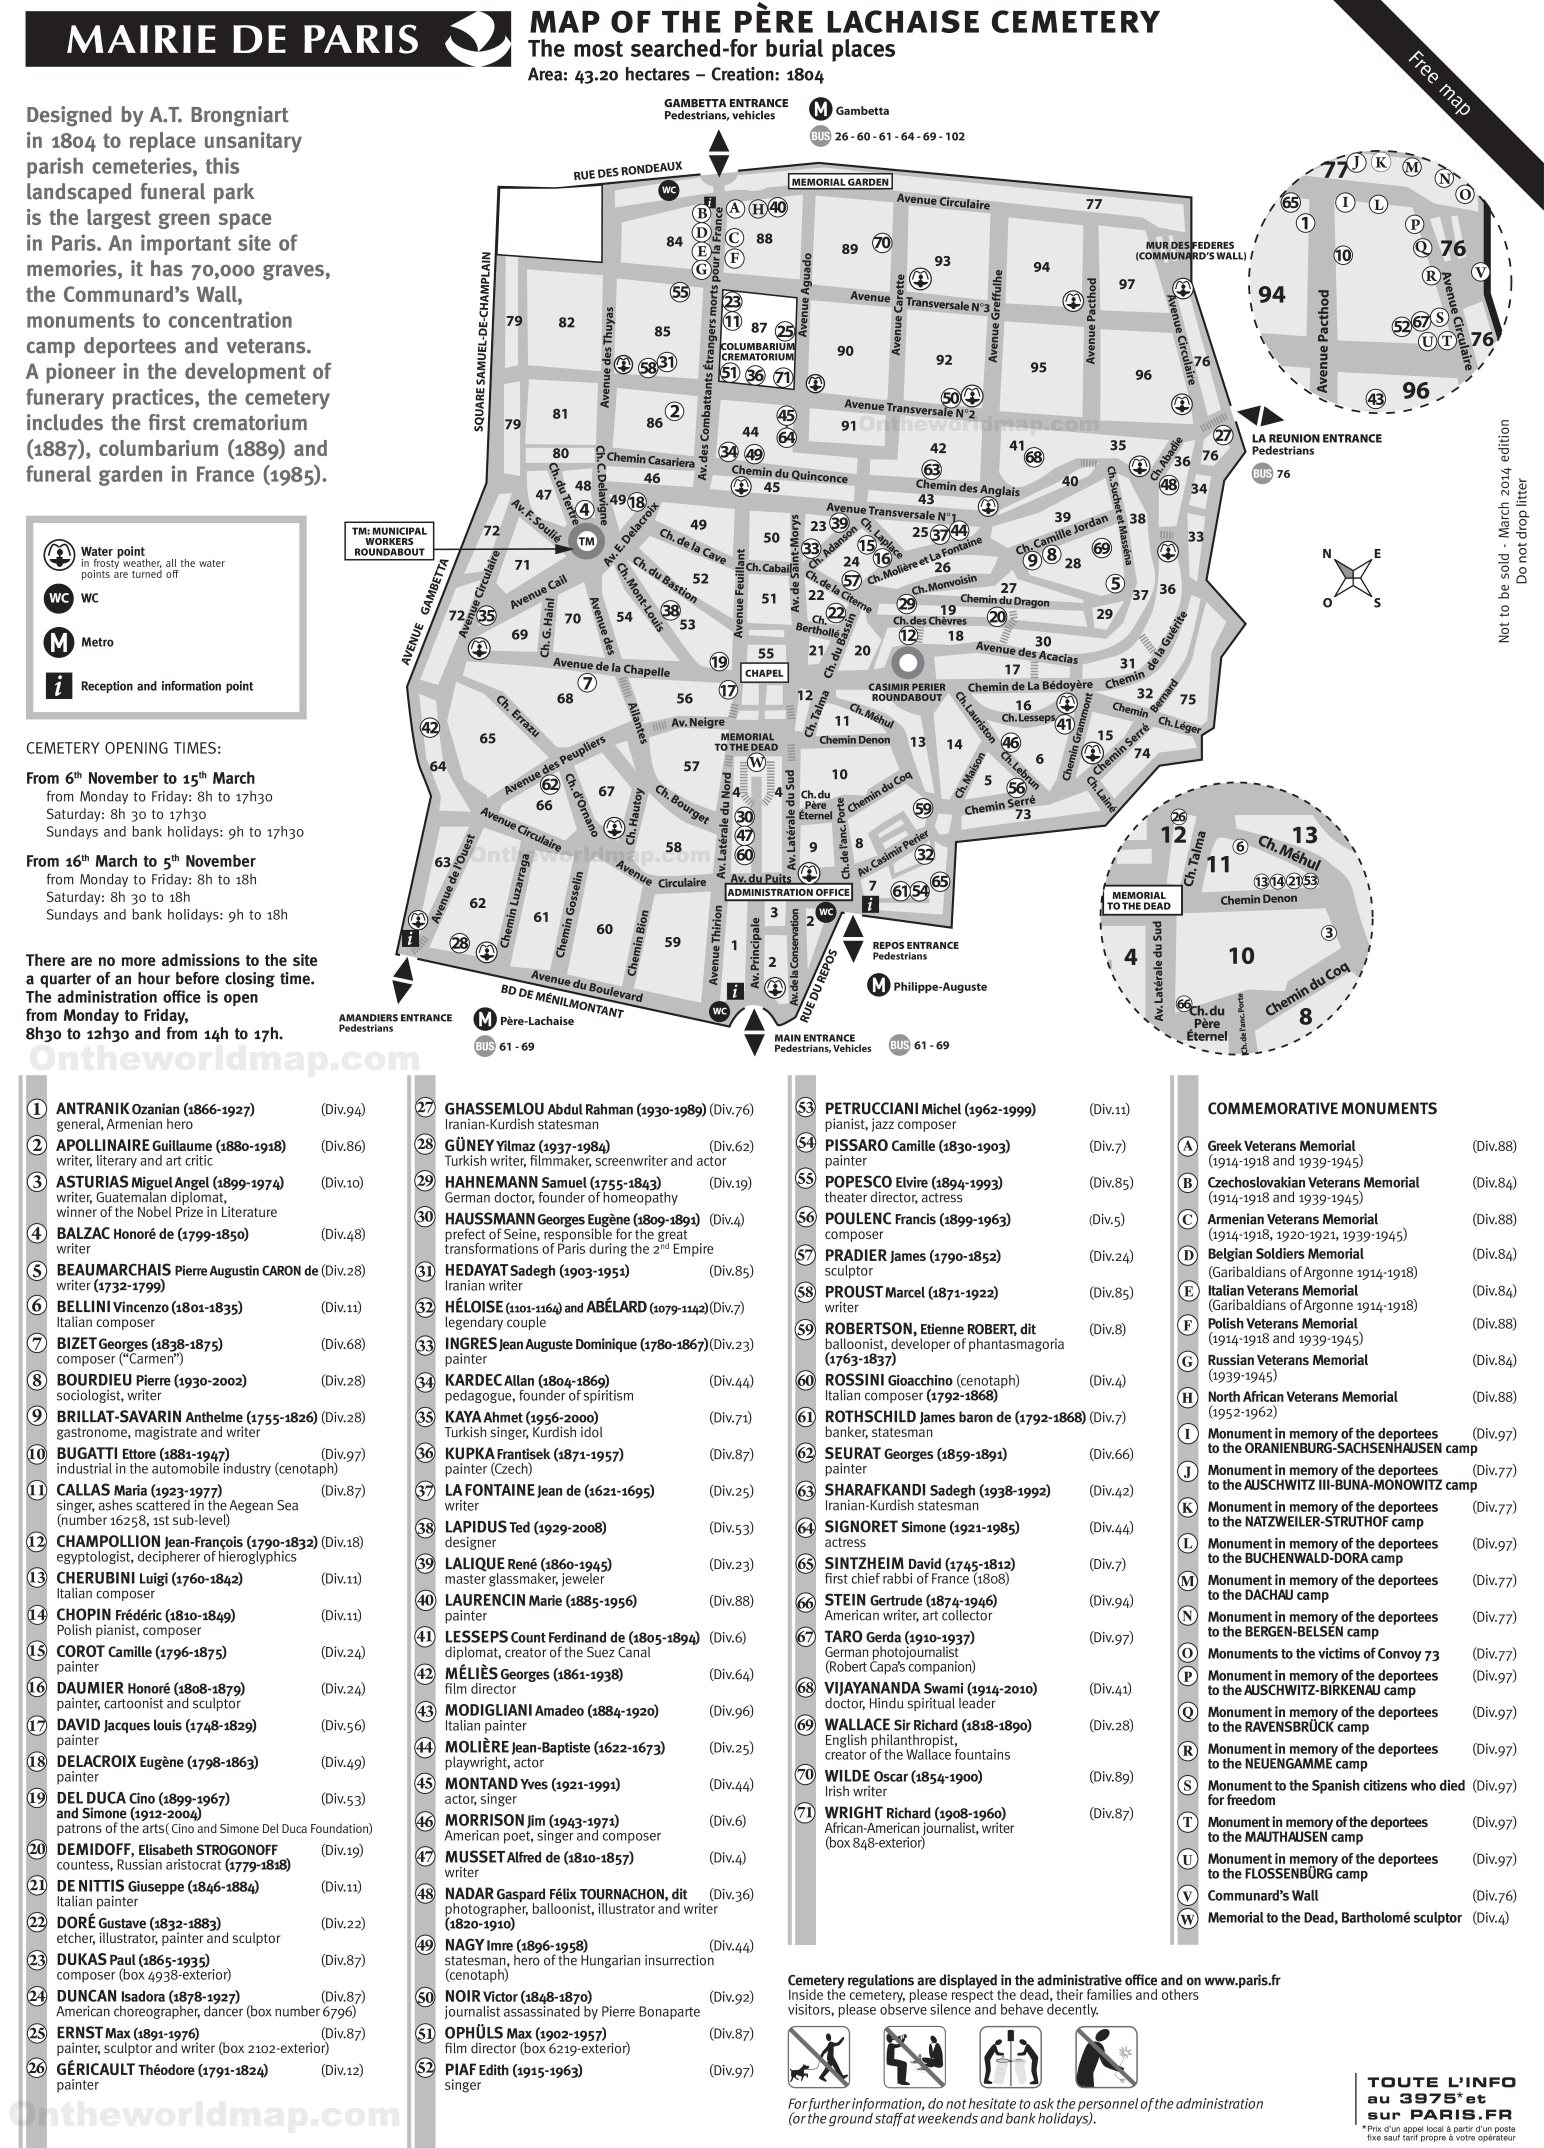 Pere Lachaise Cemetery Map